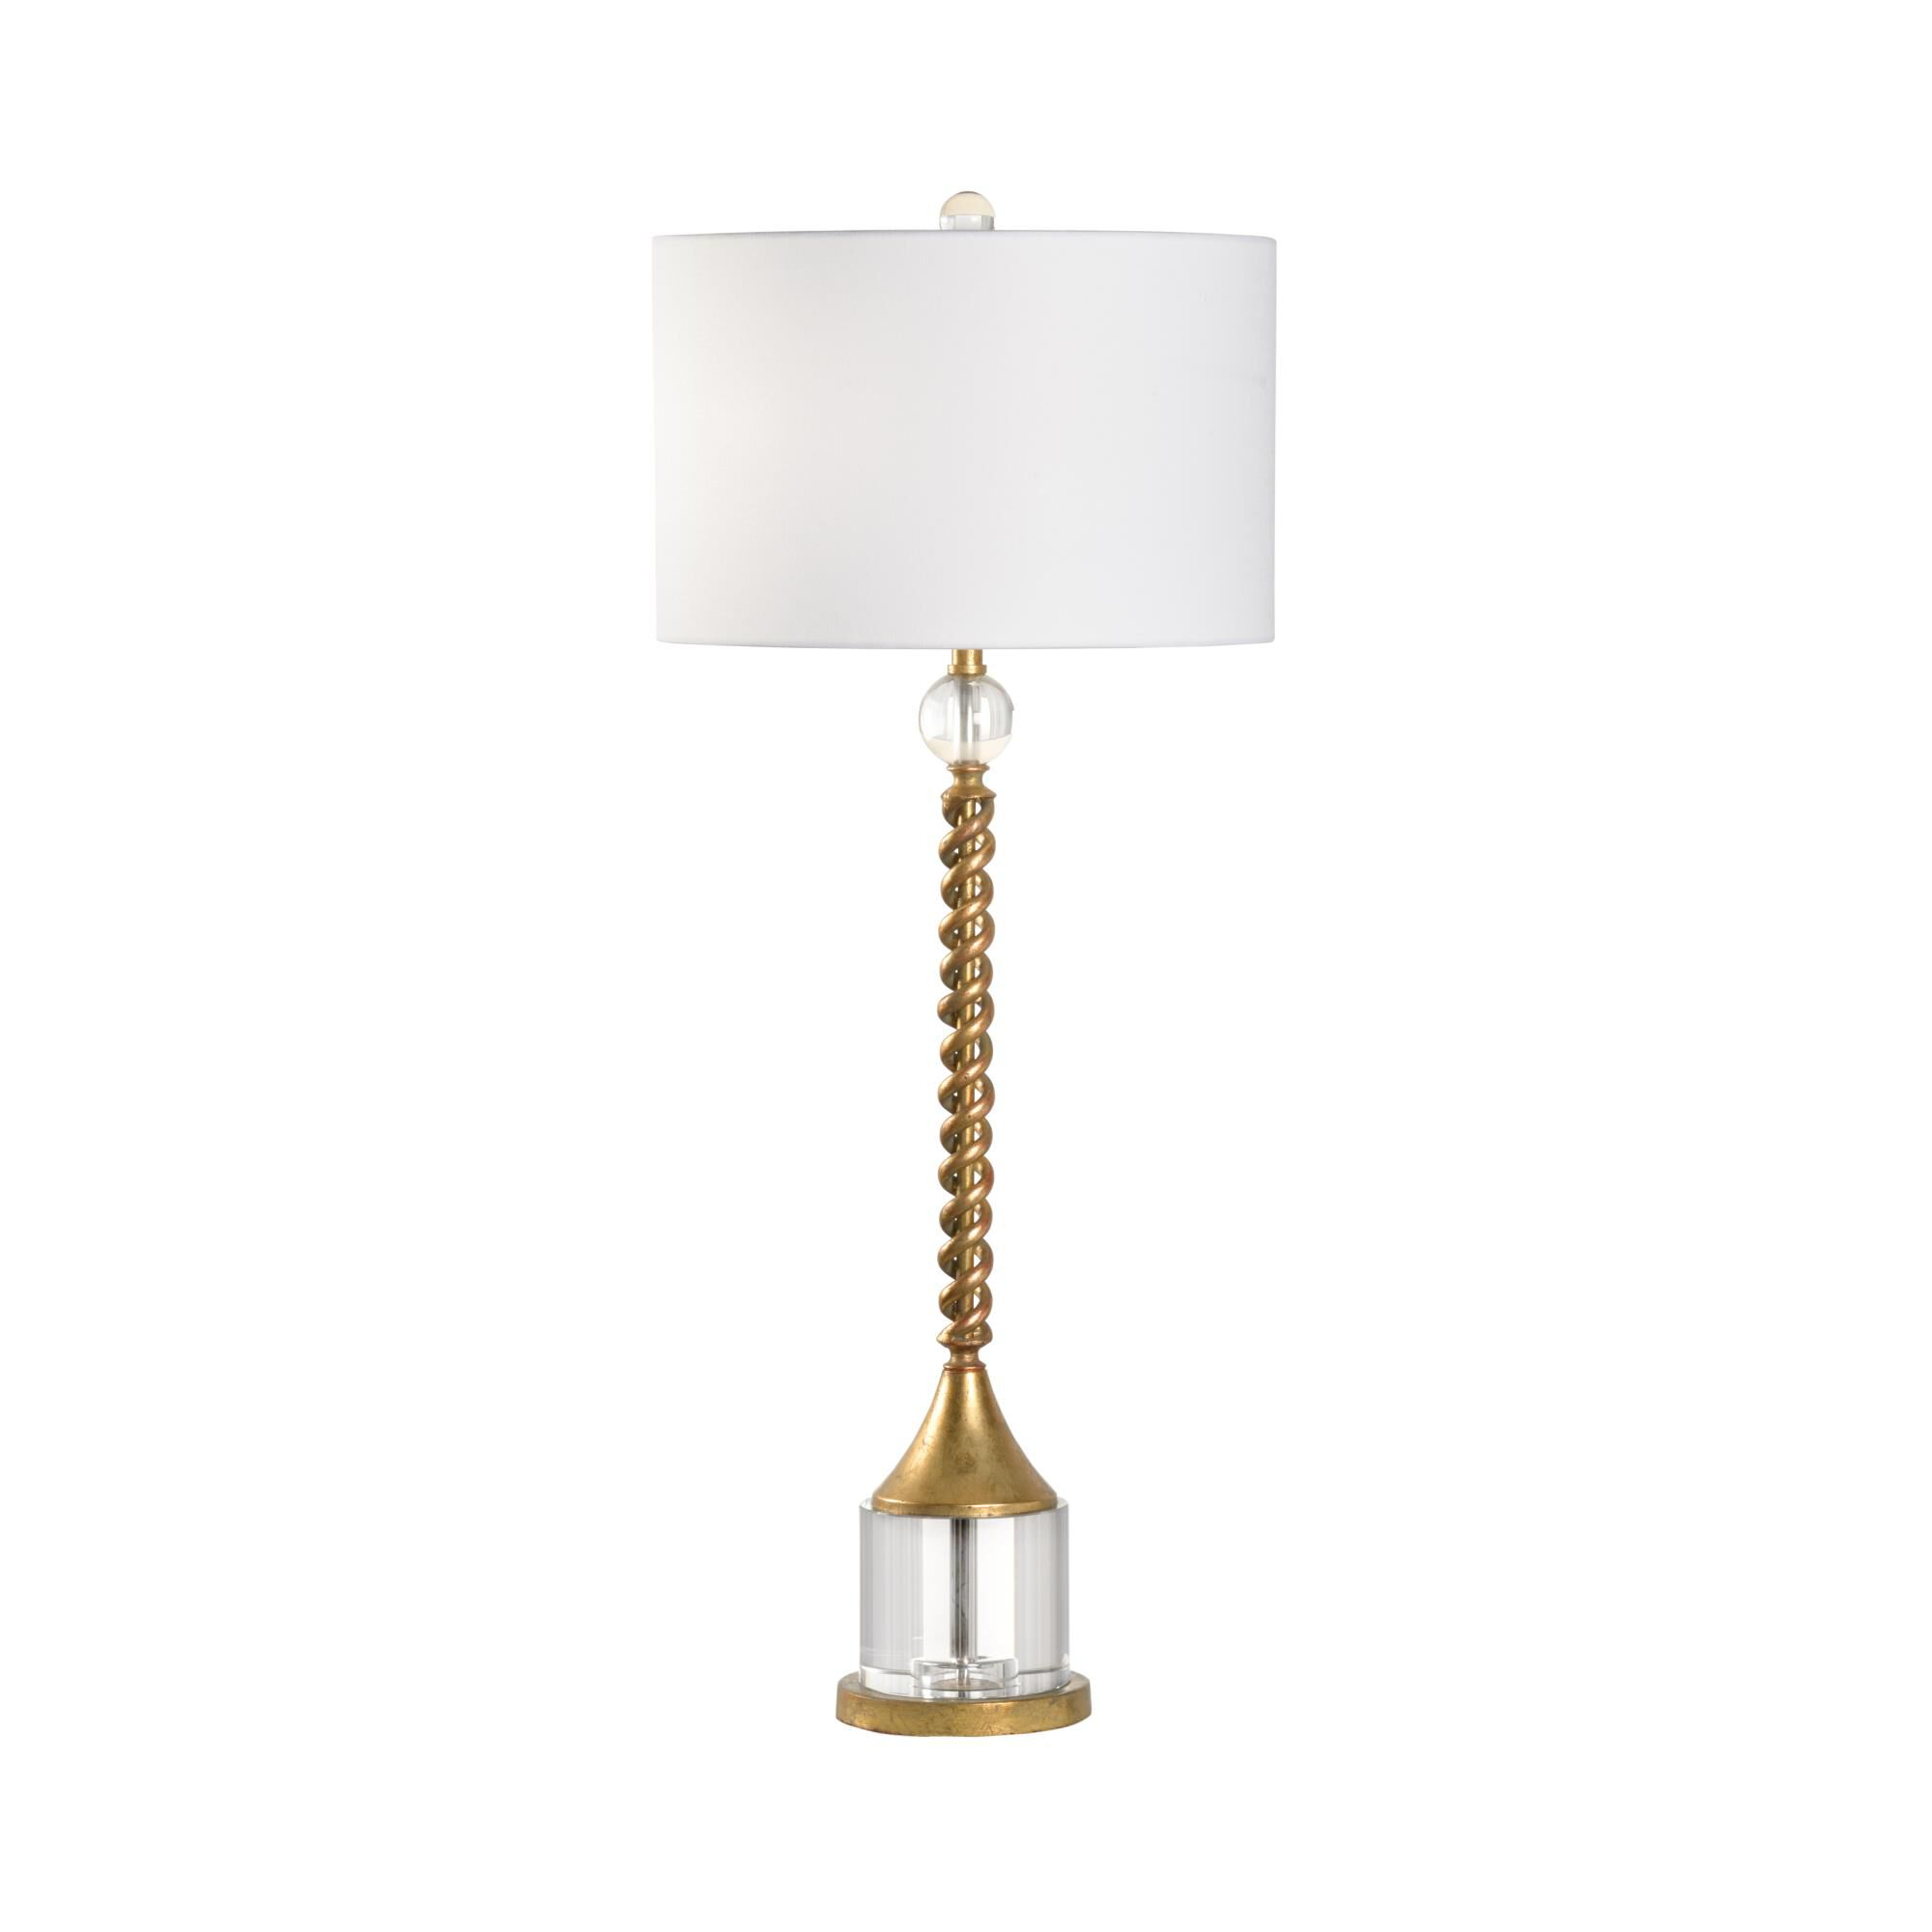 Chelsea House Key West Table Lamp Key West - 69515 - Coastal Glam Table Lamp